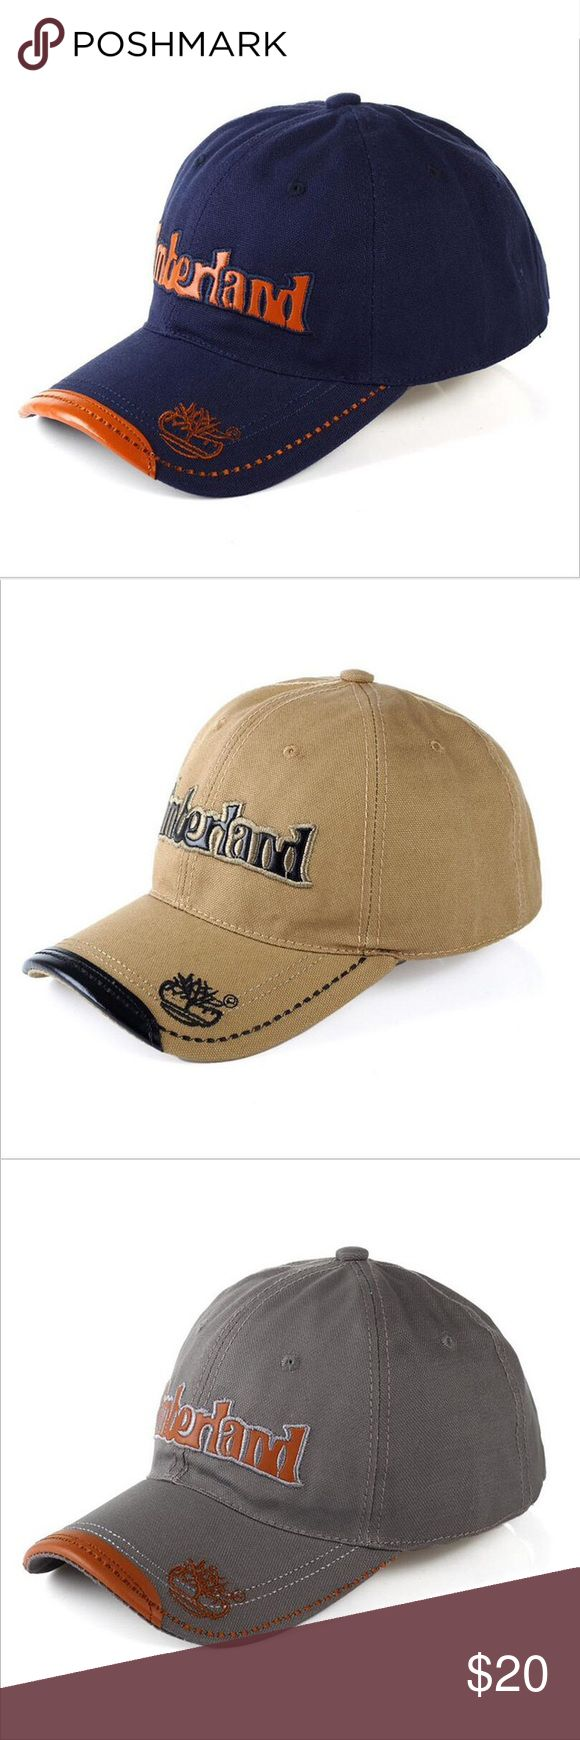 Timberland Baseball Hats Brand new Timberland baseball hats. Adjustable strap for sizing. Nice hats! Please message me the color you'd like: Blue,Gray,Black or Tan. Thank You Accessories Hats